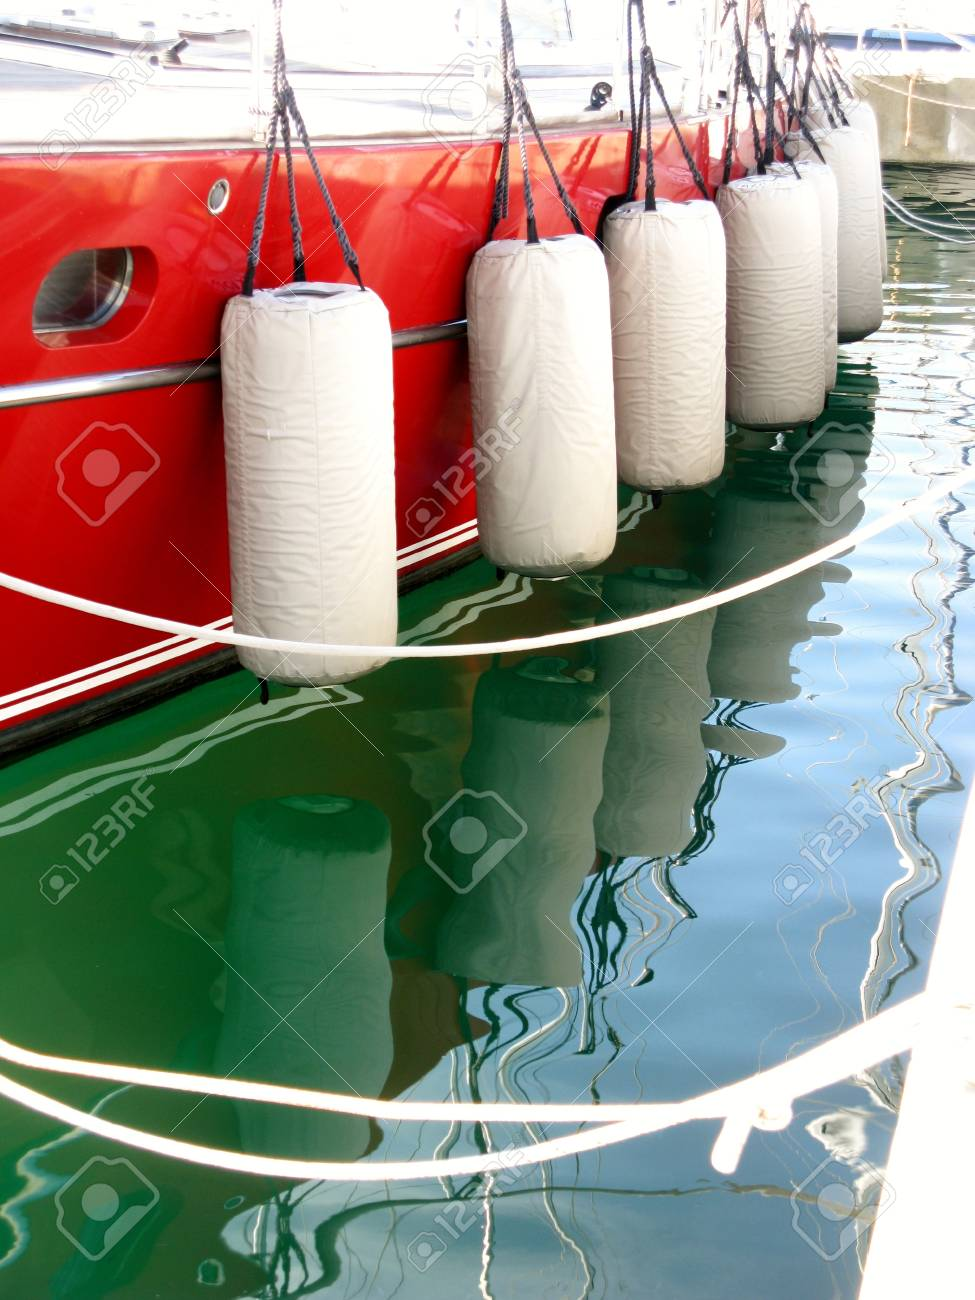 A red sailing yacht with fenders in a marina Stock Photo - 19220650